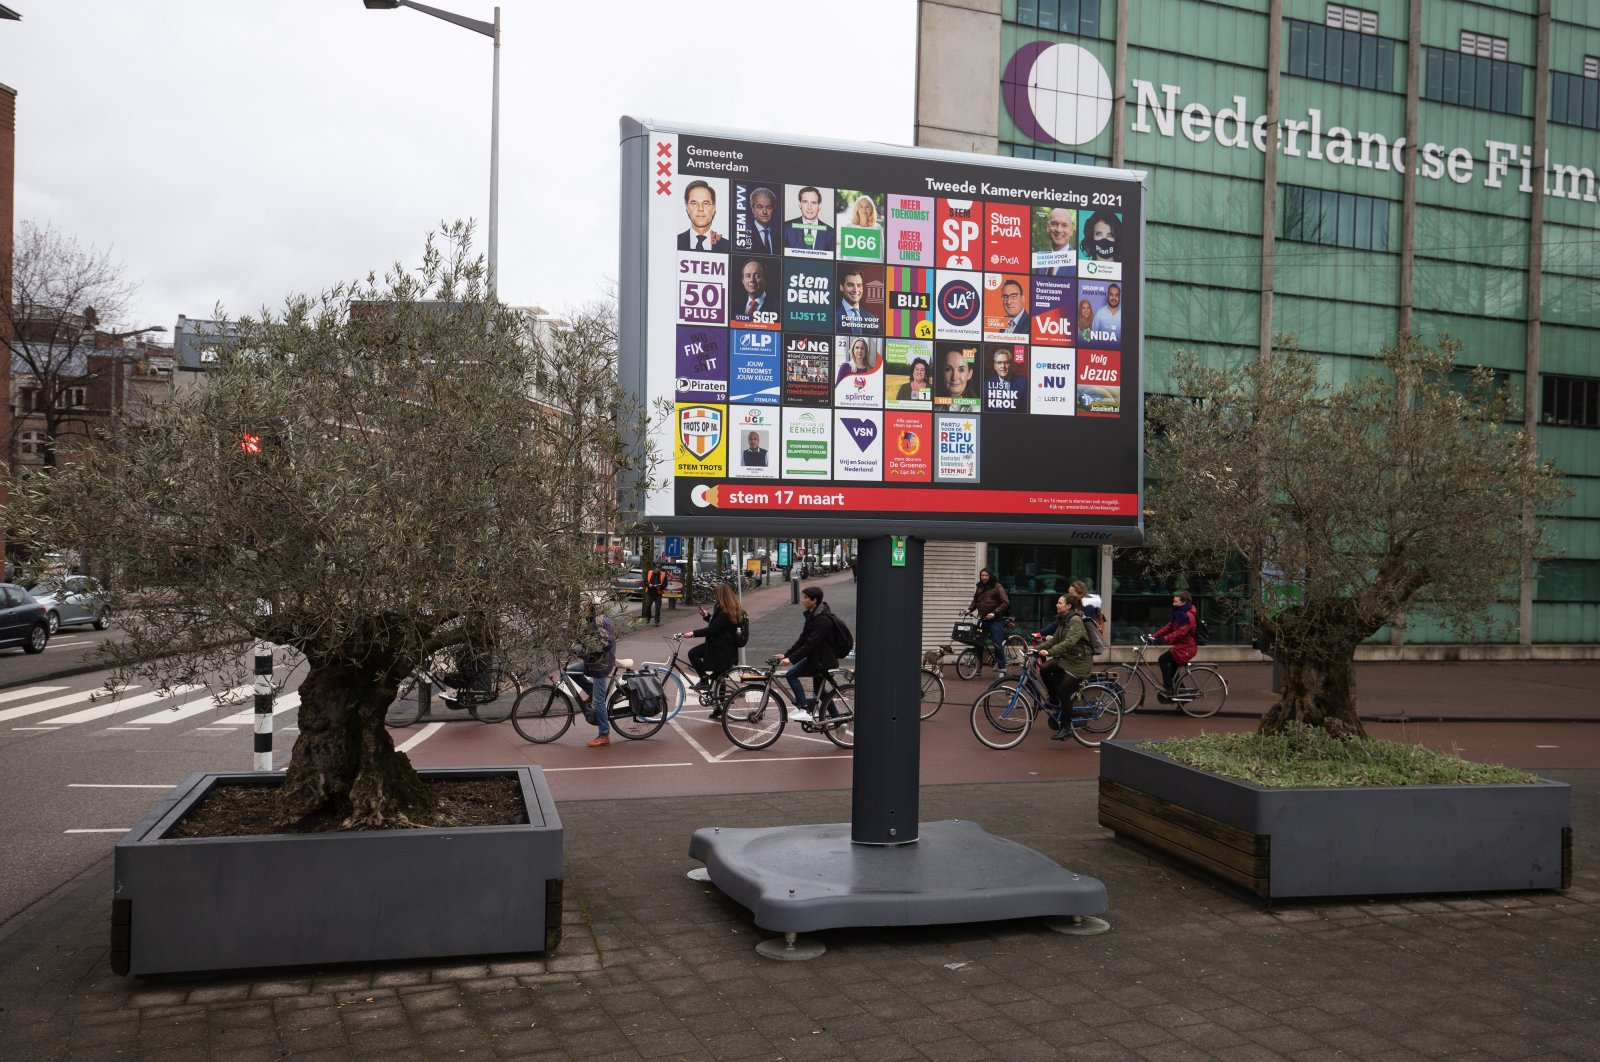 Cyclists at a road crossing near Dutch political party election campaign posters on a billboard in Amsterdam, Netherlands, on Tuesday, March 9, 2021. (Getty Images)